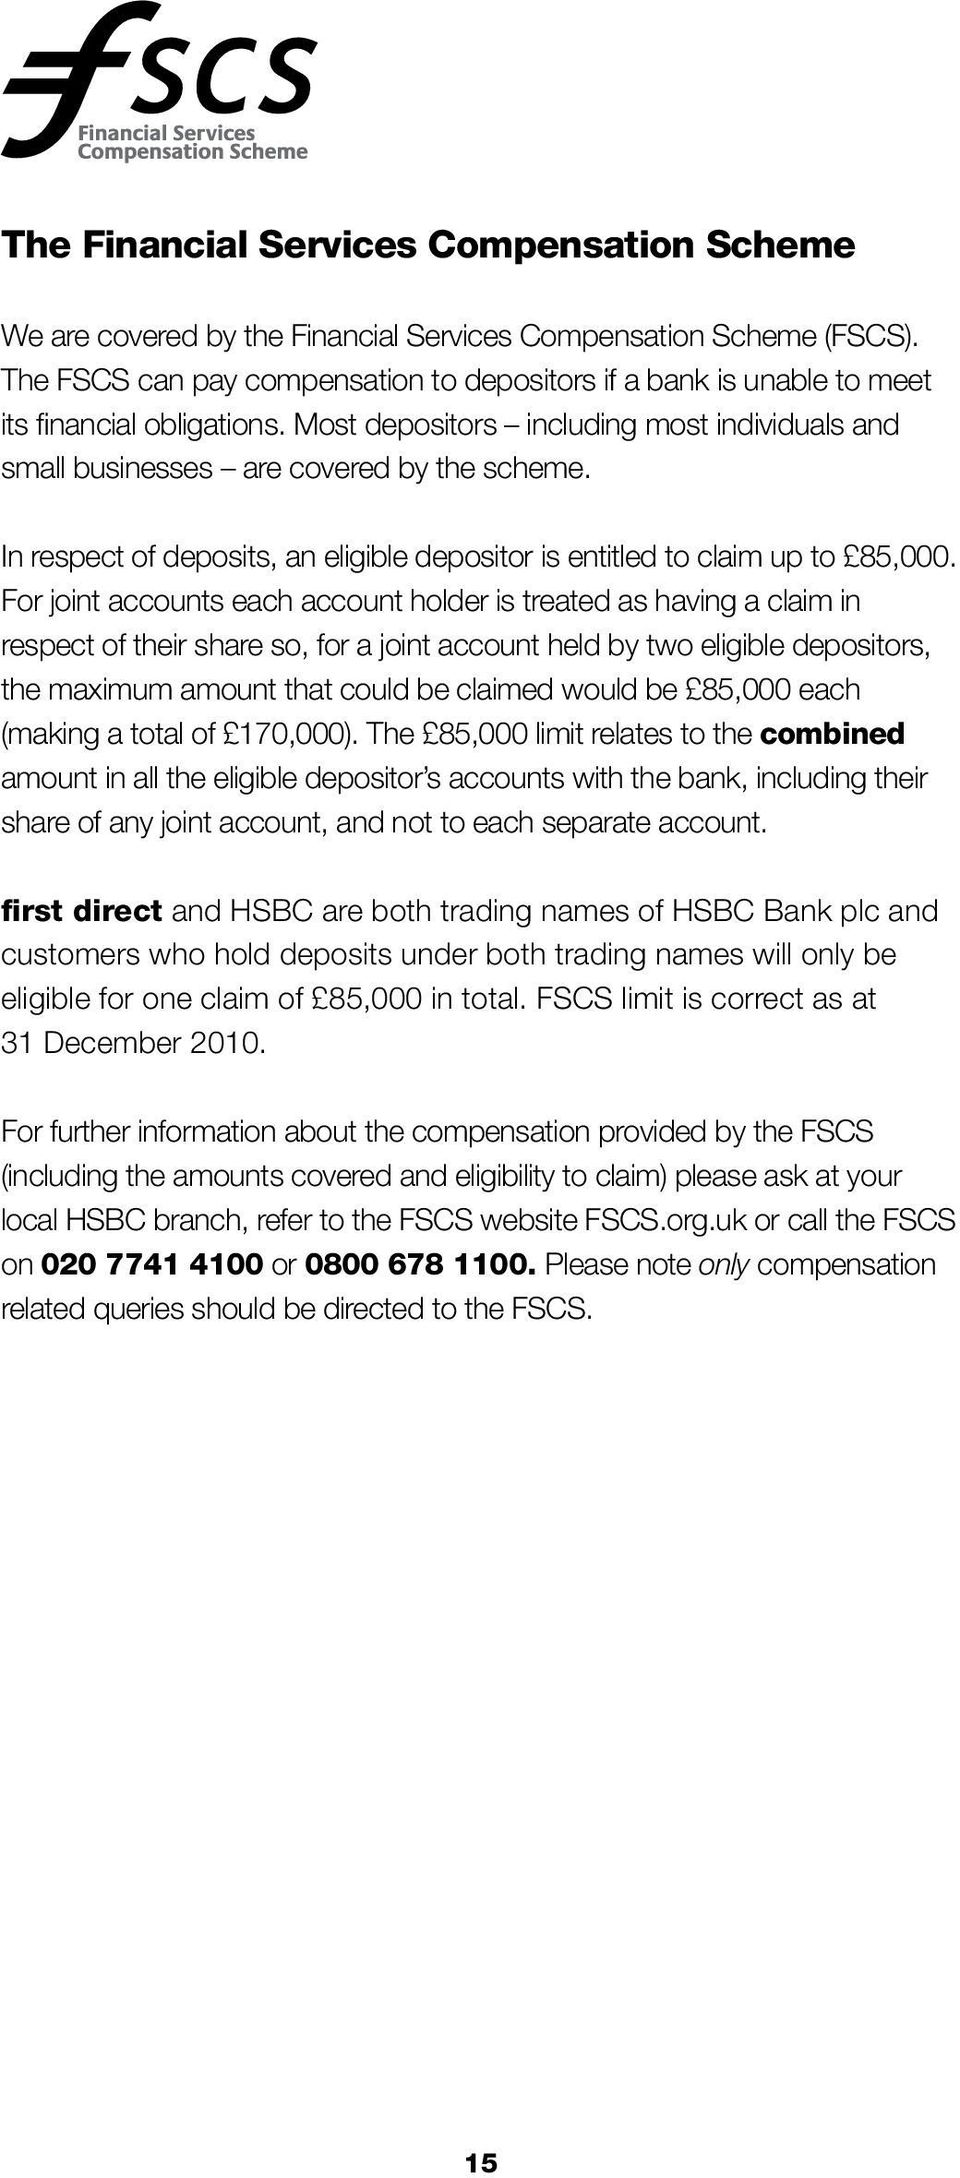 In respect of deposits, an eligible depositor is entitled to claim up to 85,000.